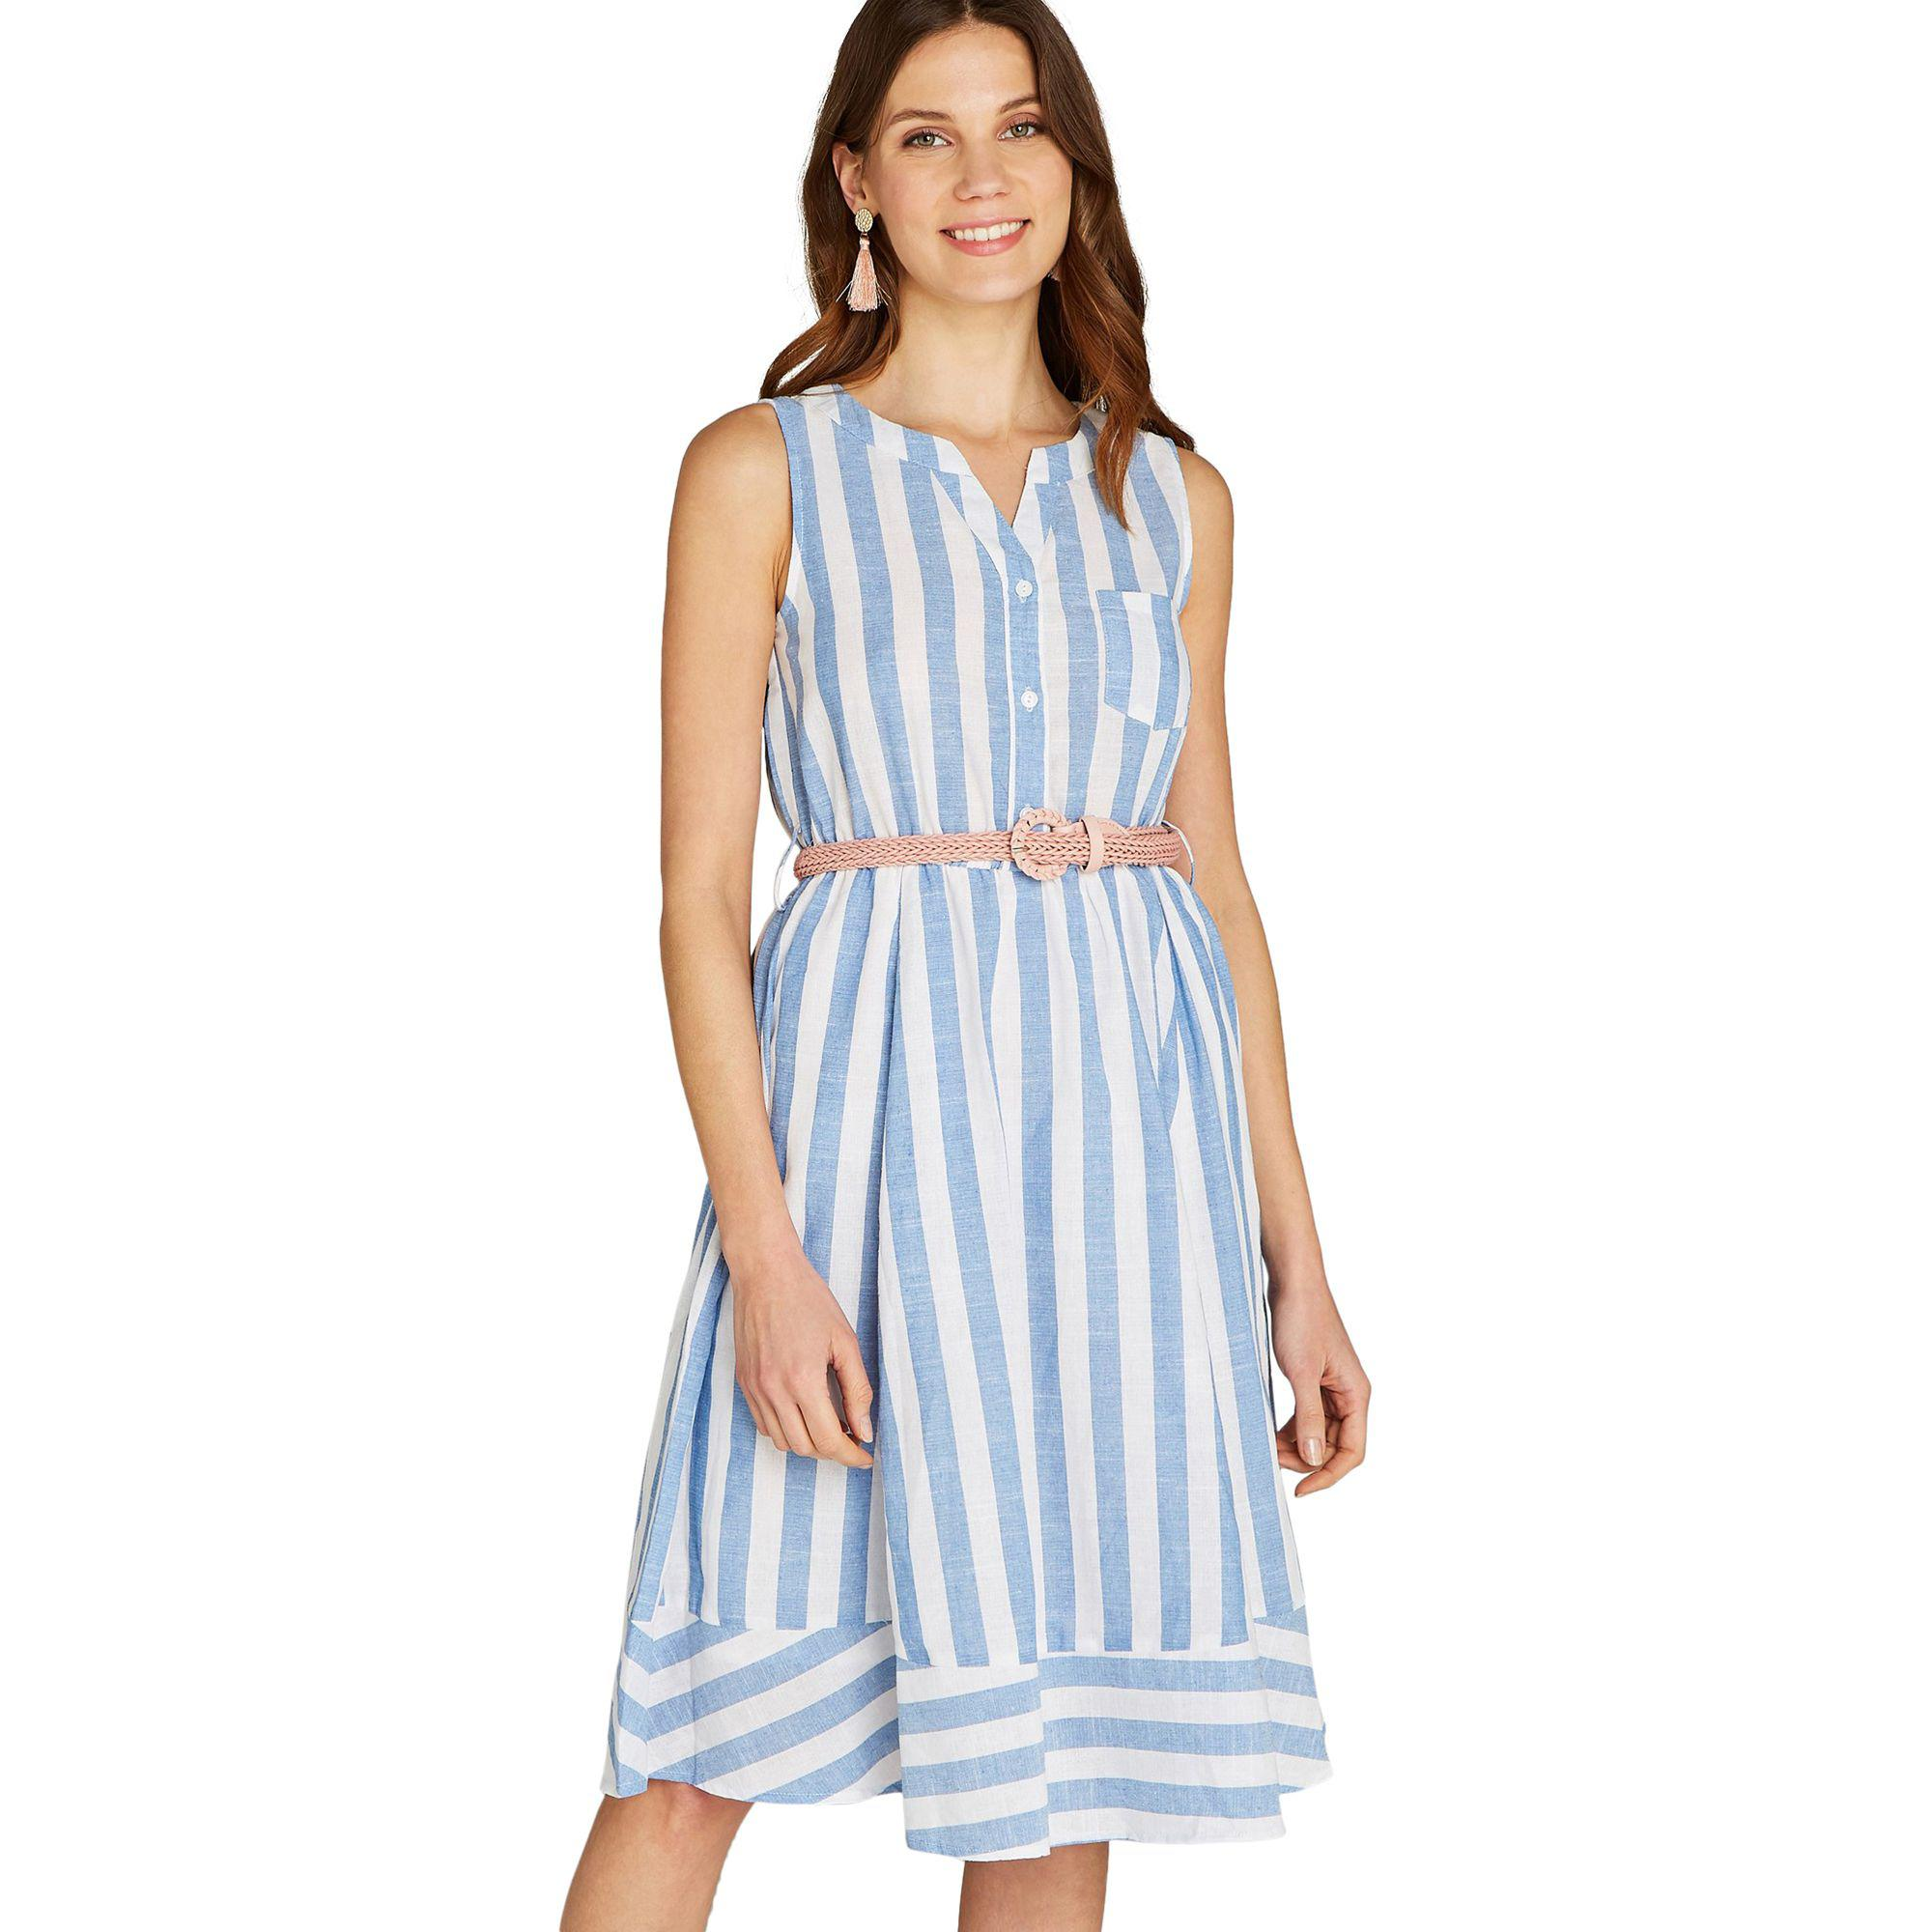 8cf334104f Apricot Blue Deckchair Stripe Print Dress in Blue - Lyst